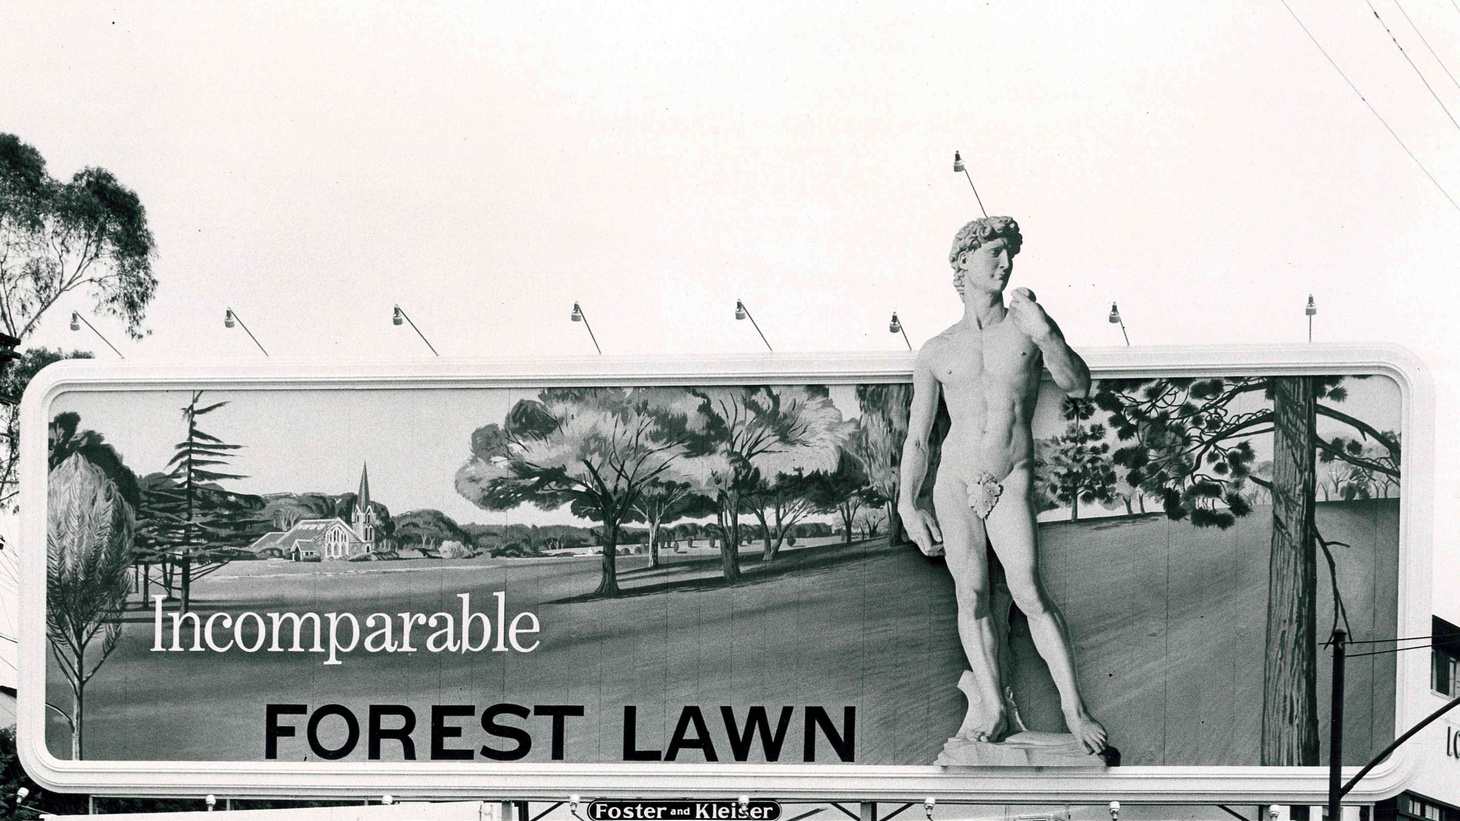 Lead Photo: Unknown Photographer, Hand-painted Billboard with Michelangelo's David, 1955. Archival photograph, 15 x 8 inches.